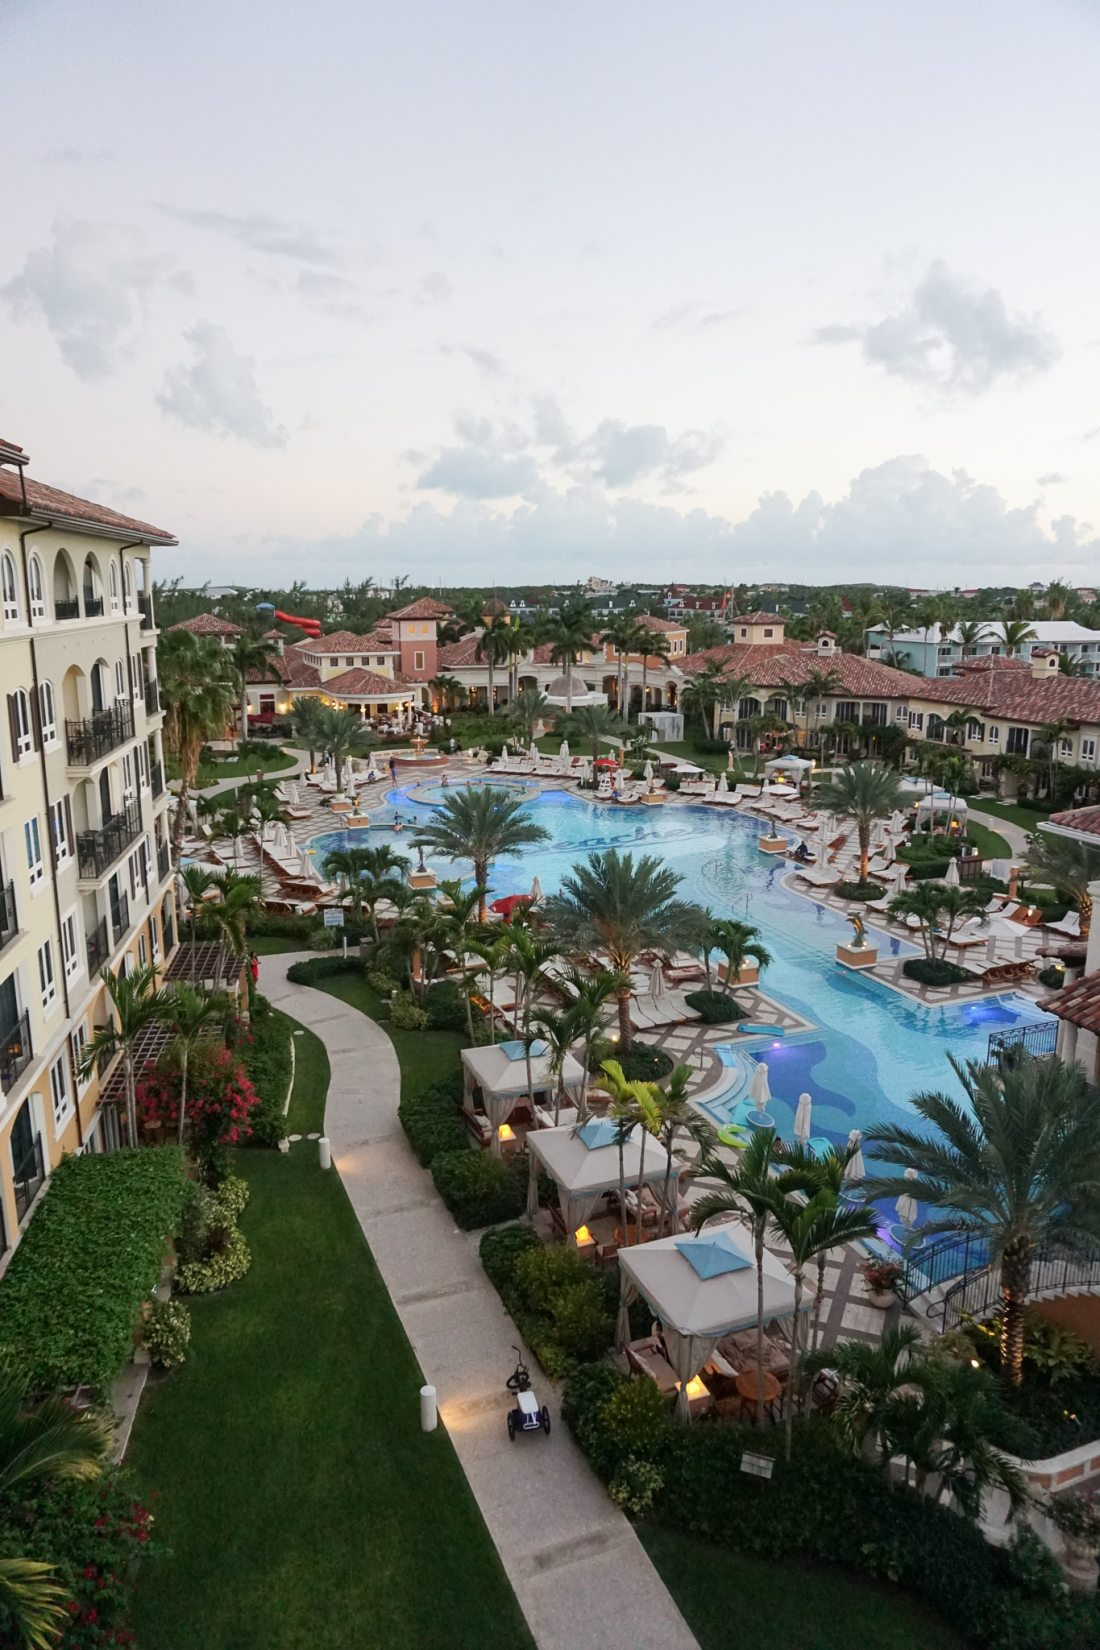 Beaches Resorts in Turks and Caicos Italian Village Overlook. Paradise does exist, and it's only a plane ride away. Take a look inside our suite in this Oceanfront Family Suite Room Tour at Beaches Resorts in Turks and Caicos.